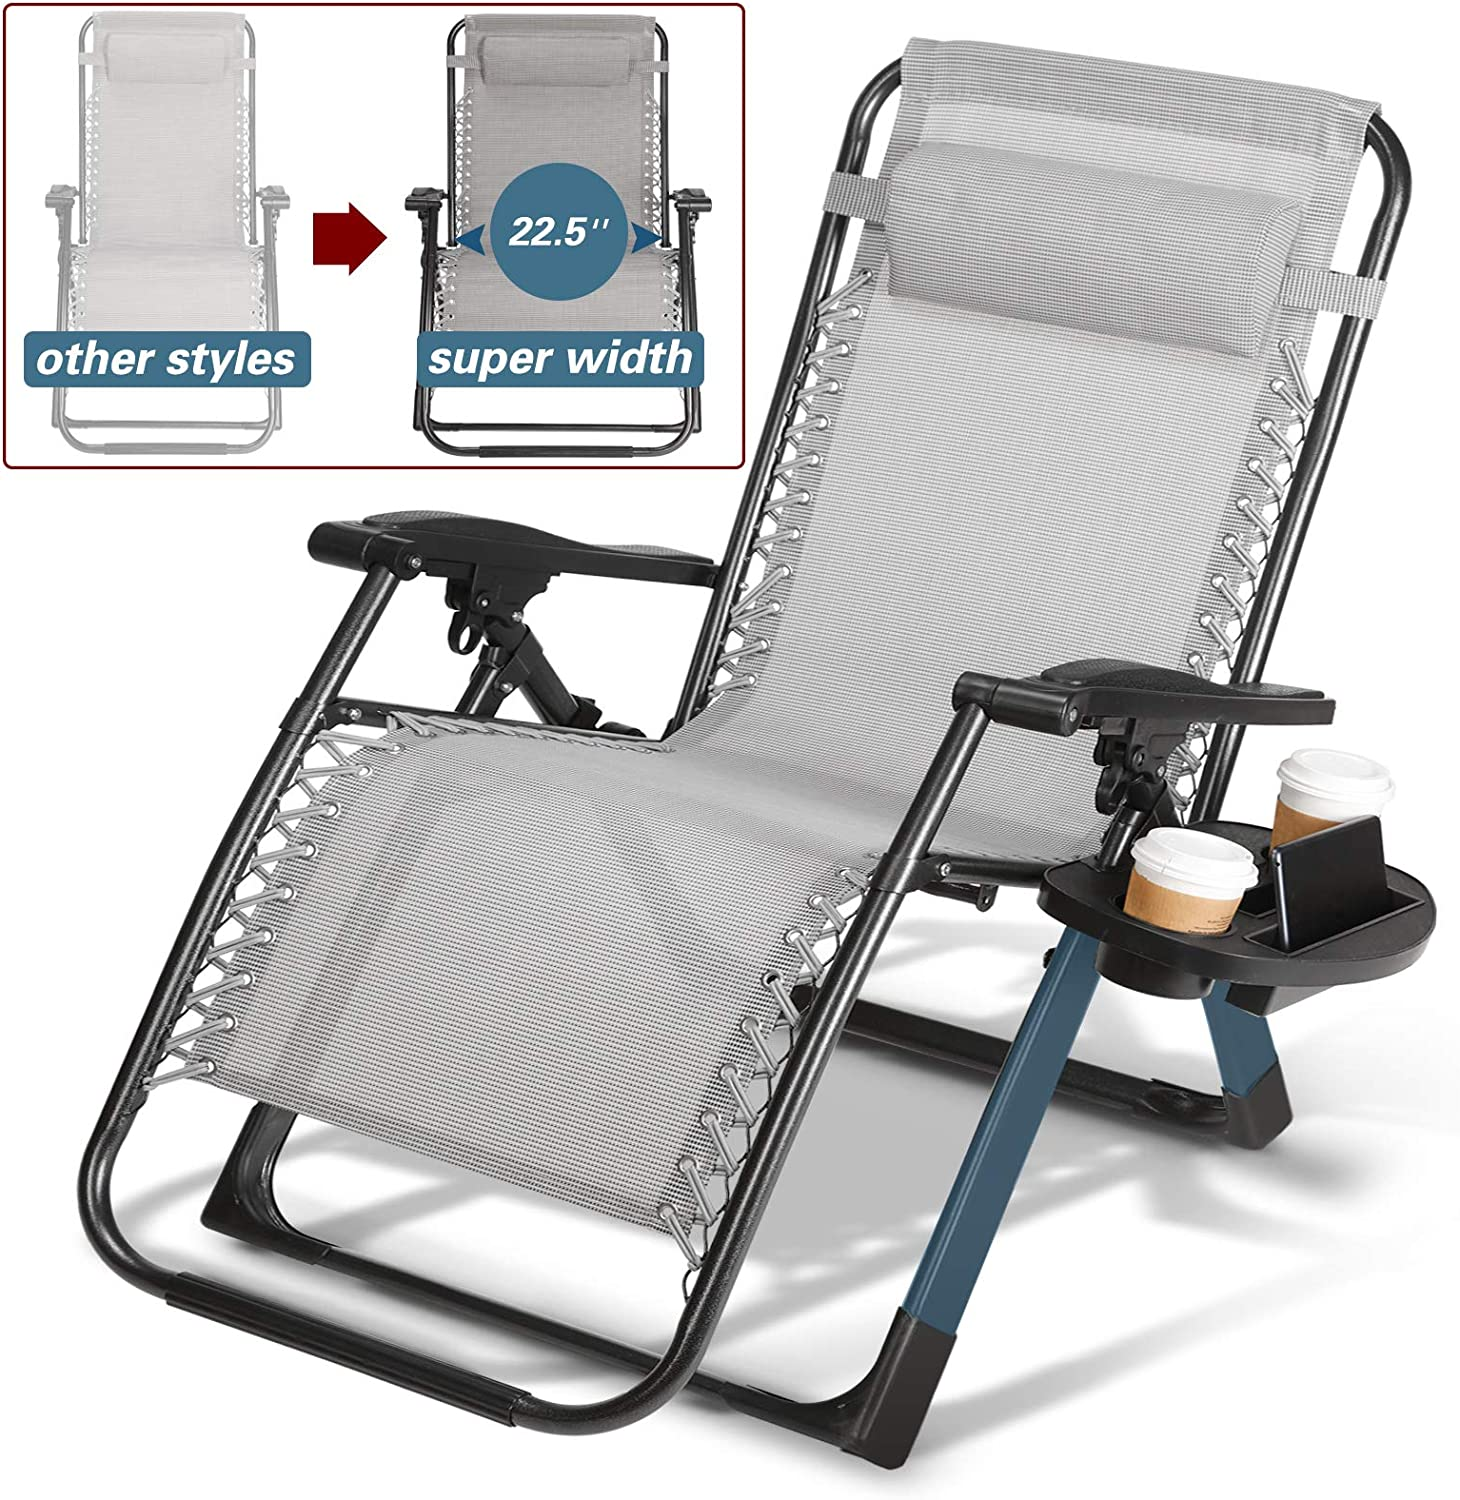 Artist Hand 350LBS Capacity Zero Gravity Heavy Duty Outdoor Folding Lounge Chairs wSnack Tray,Lawn Patio Reclining Chairs XL Size (Extra Wide Seats)